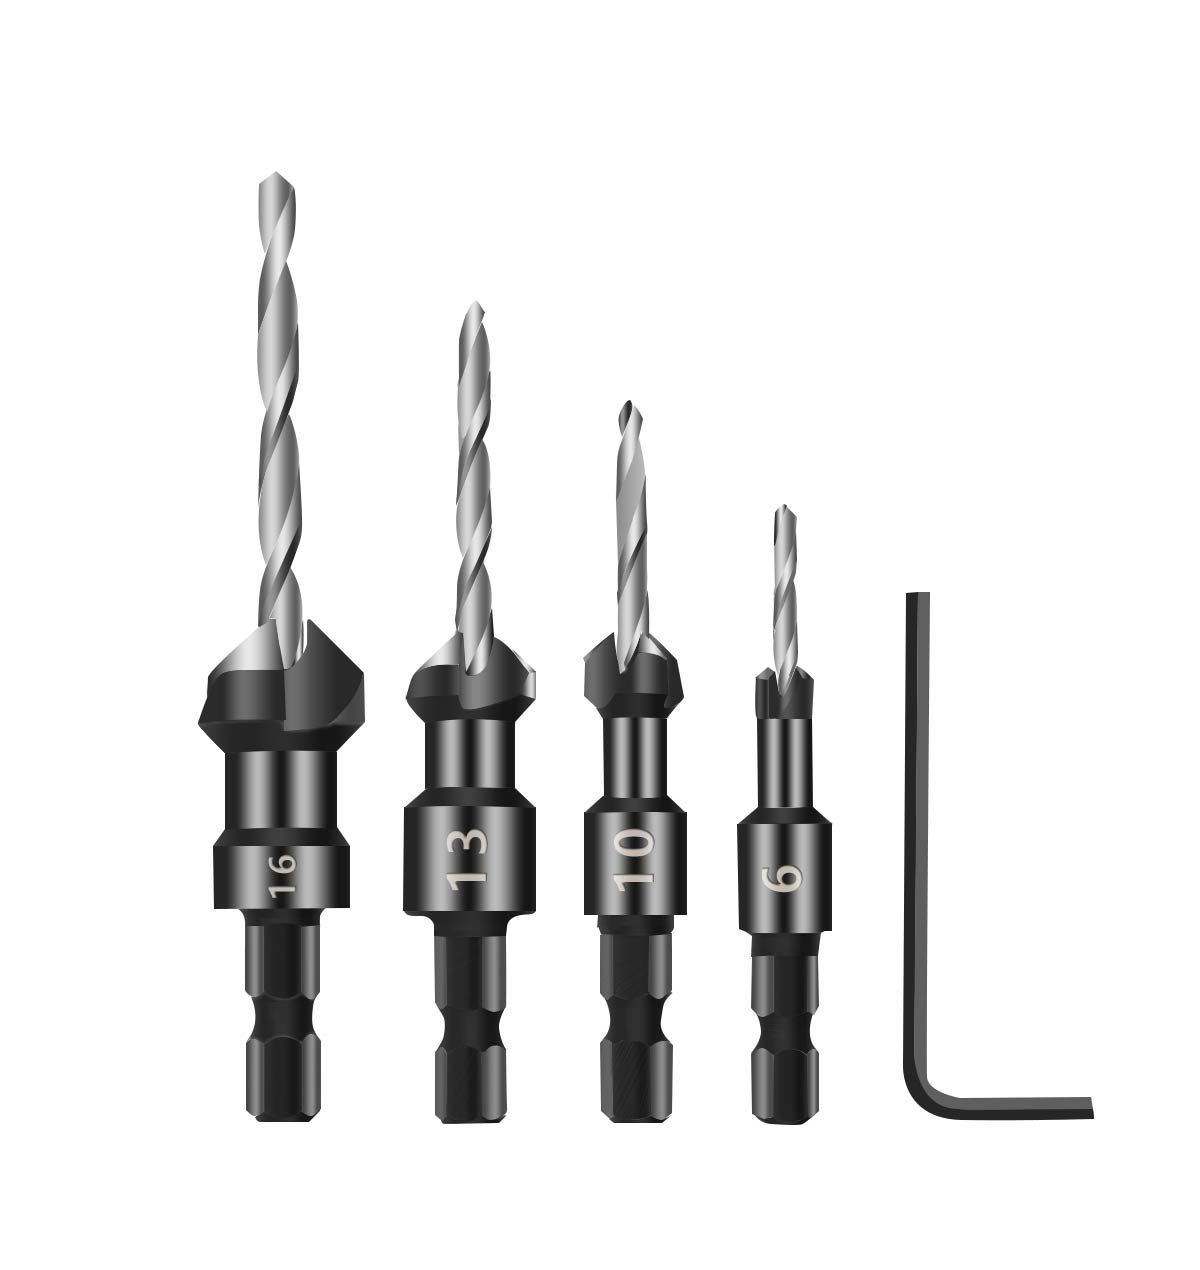 4PCS Countersink Drill Bit, Mgtgbao Drill Bit Set Wood Drill Set Woodworking Countersink Chamfer, with One Hex Wrench, 6# 10,#13#16 Screw Size.